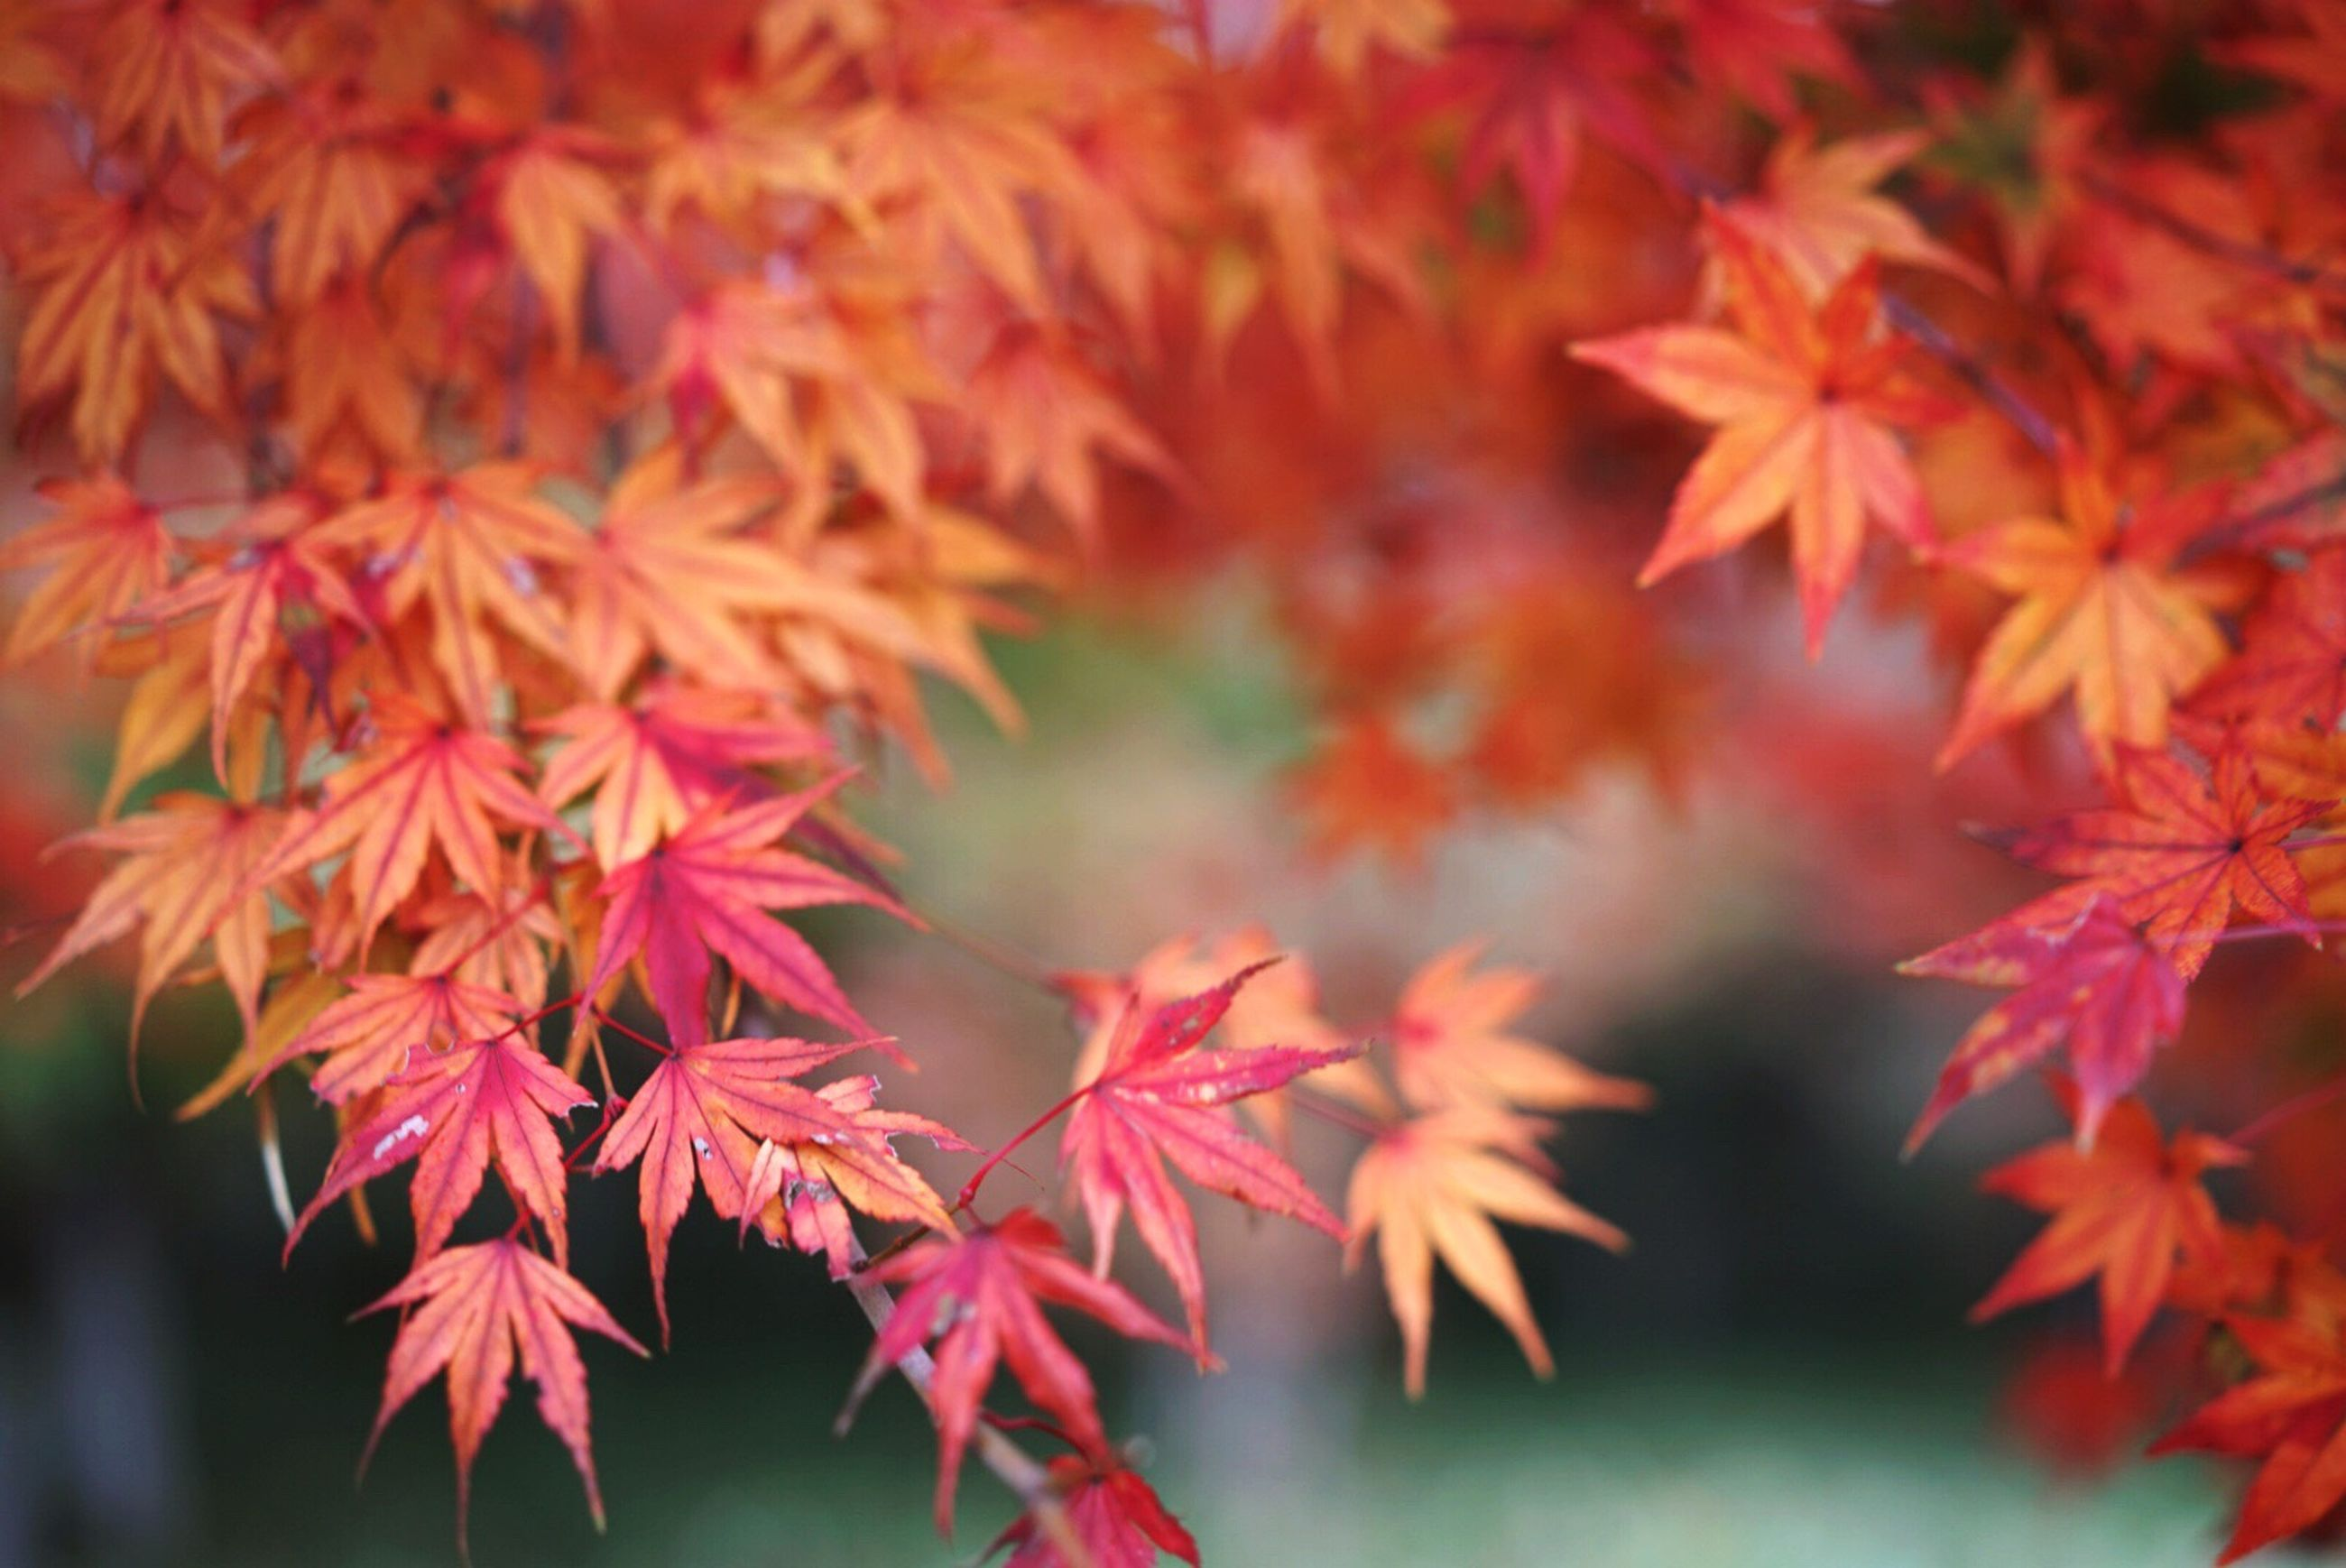 autumn, change, red, season, leaf, branch, growth, tree, orange color, beauty in nature, nature, focus on foreground, close-up, selective focus, leaves, day, tranquility, outdoors, fragility, vibrant color